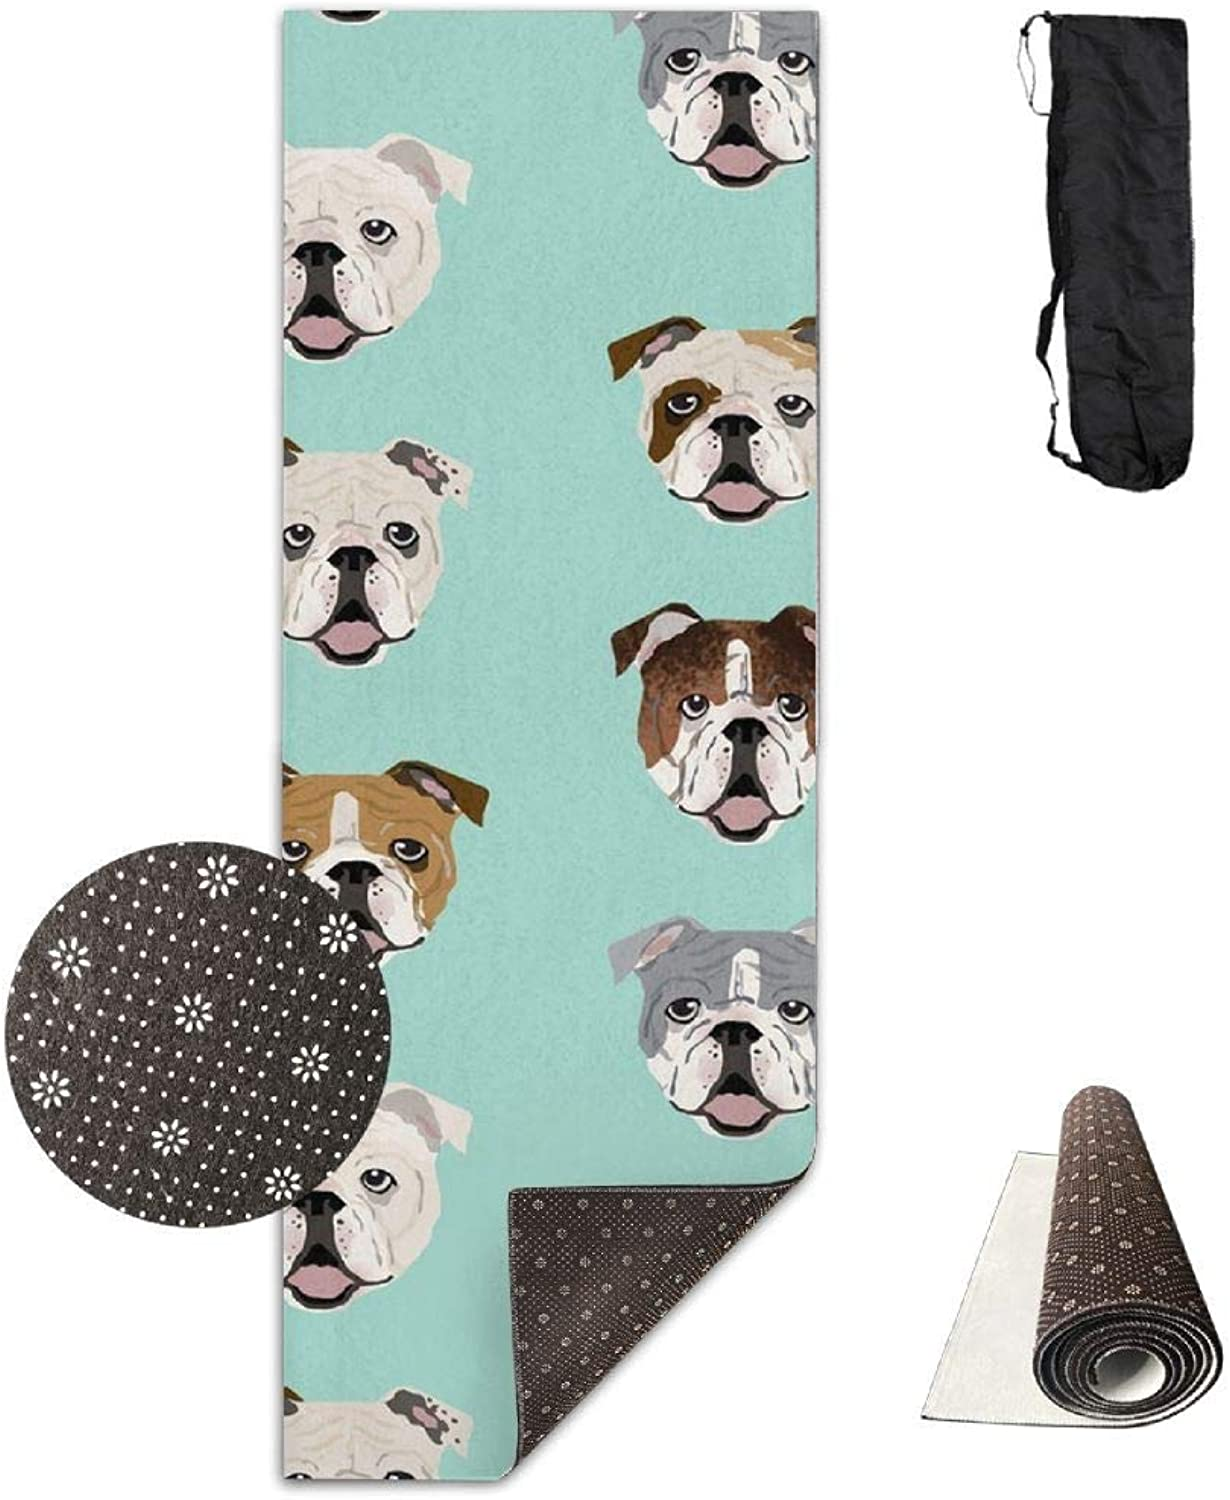 70Inch Long 28Inch Wide Comfort Velvet Yoga Mat, English Bulldog Faces Mat Carrying Strap & Bag